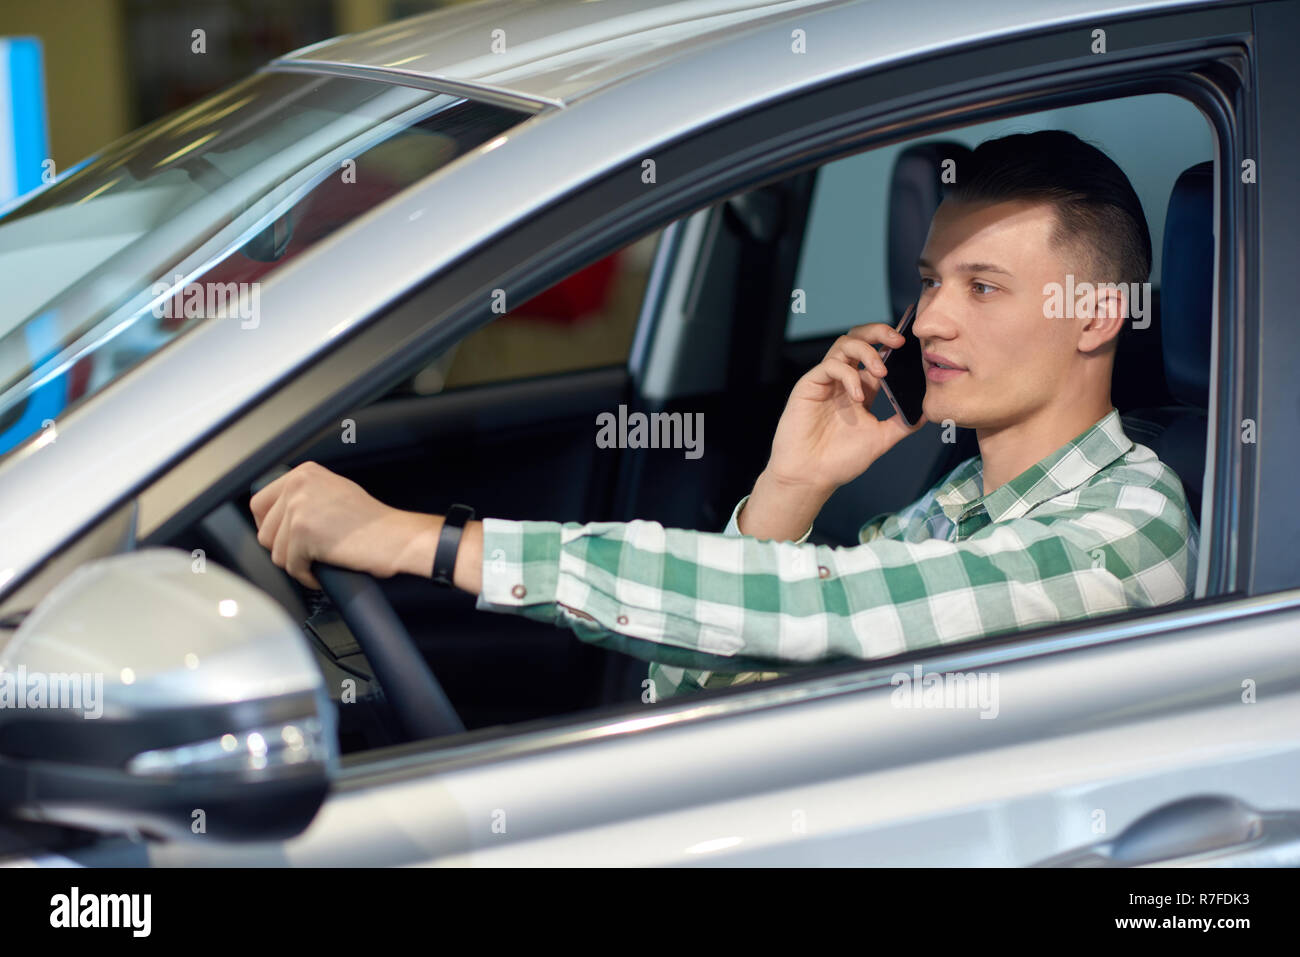 One Owner Car Guy >> Young Attractive Driver Talking On Phone While Riding Handsome